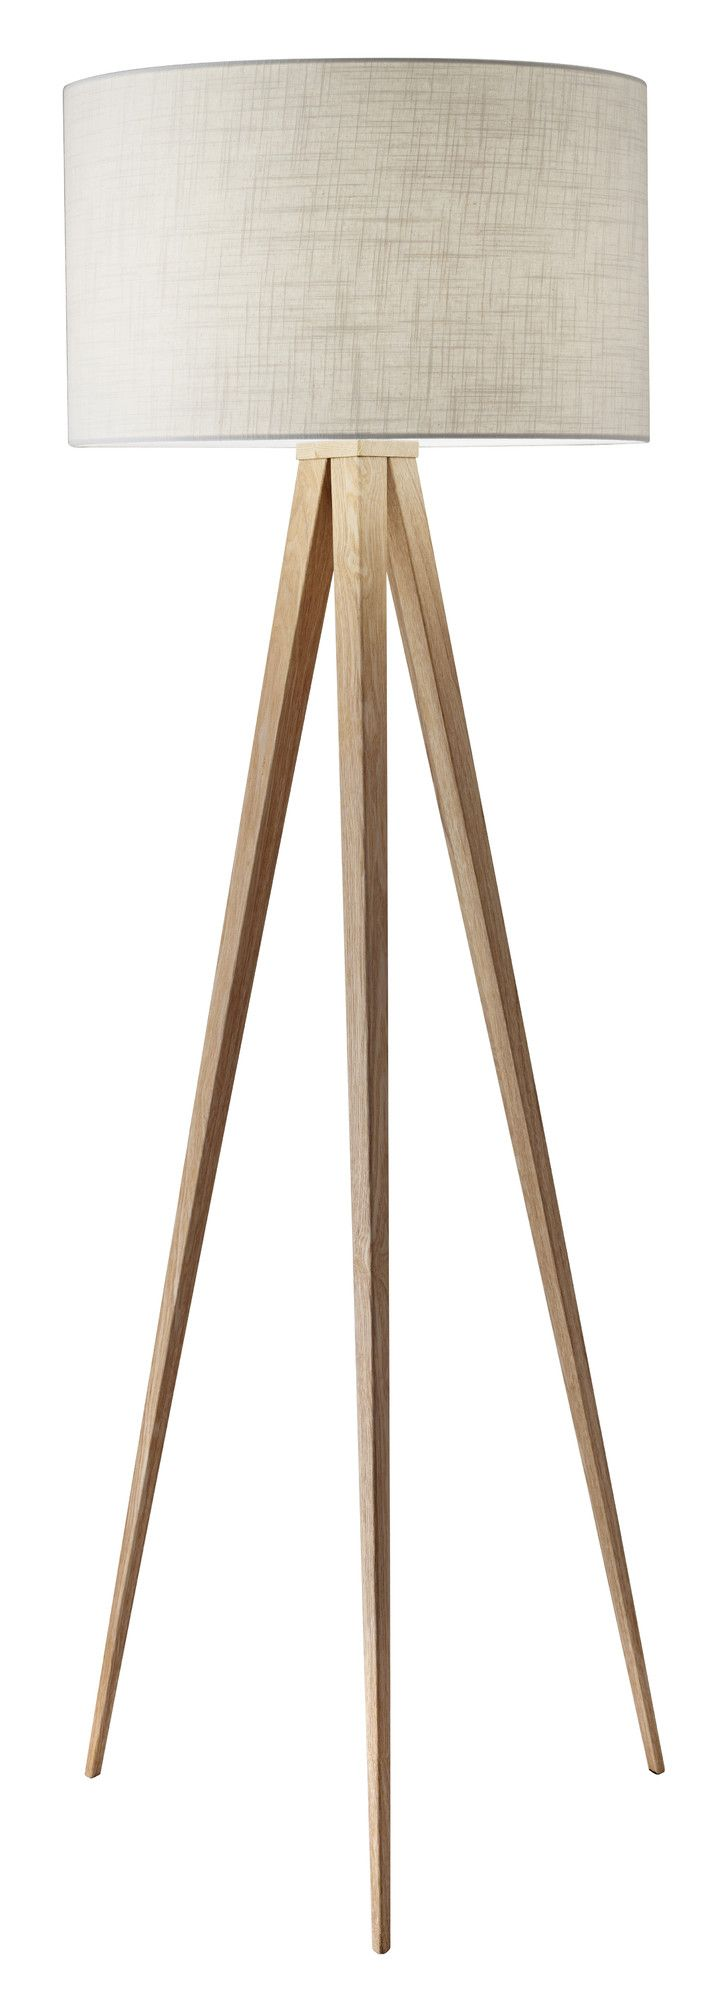 Features:  -Base finish is natural wood.  -It has an urban style.  -3-way rotary socket switch.  -Off-white textured linen.  Base Finish: -Natural.  Material: -Manufactured wood/Metal.  Hardware Mater